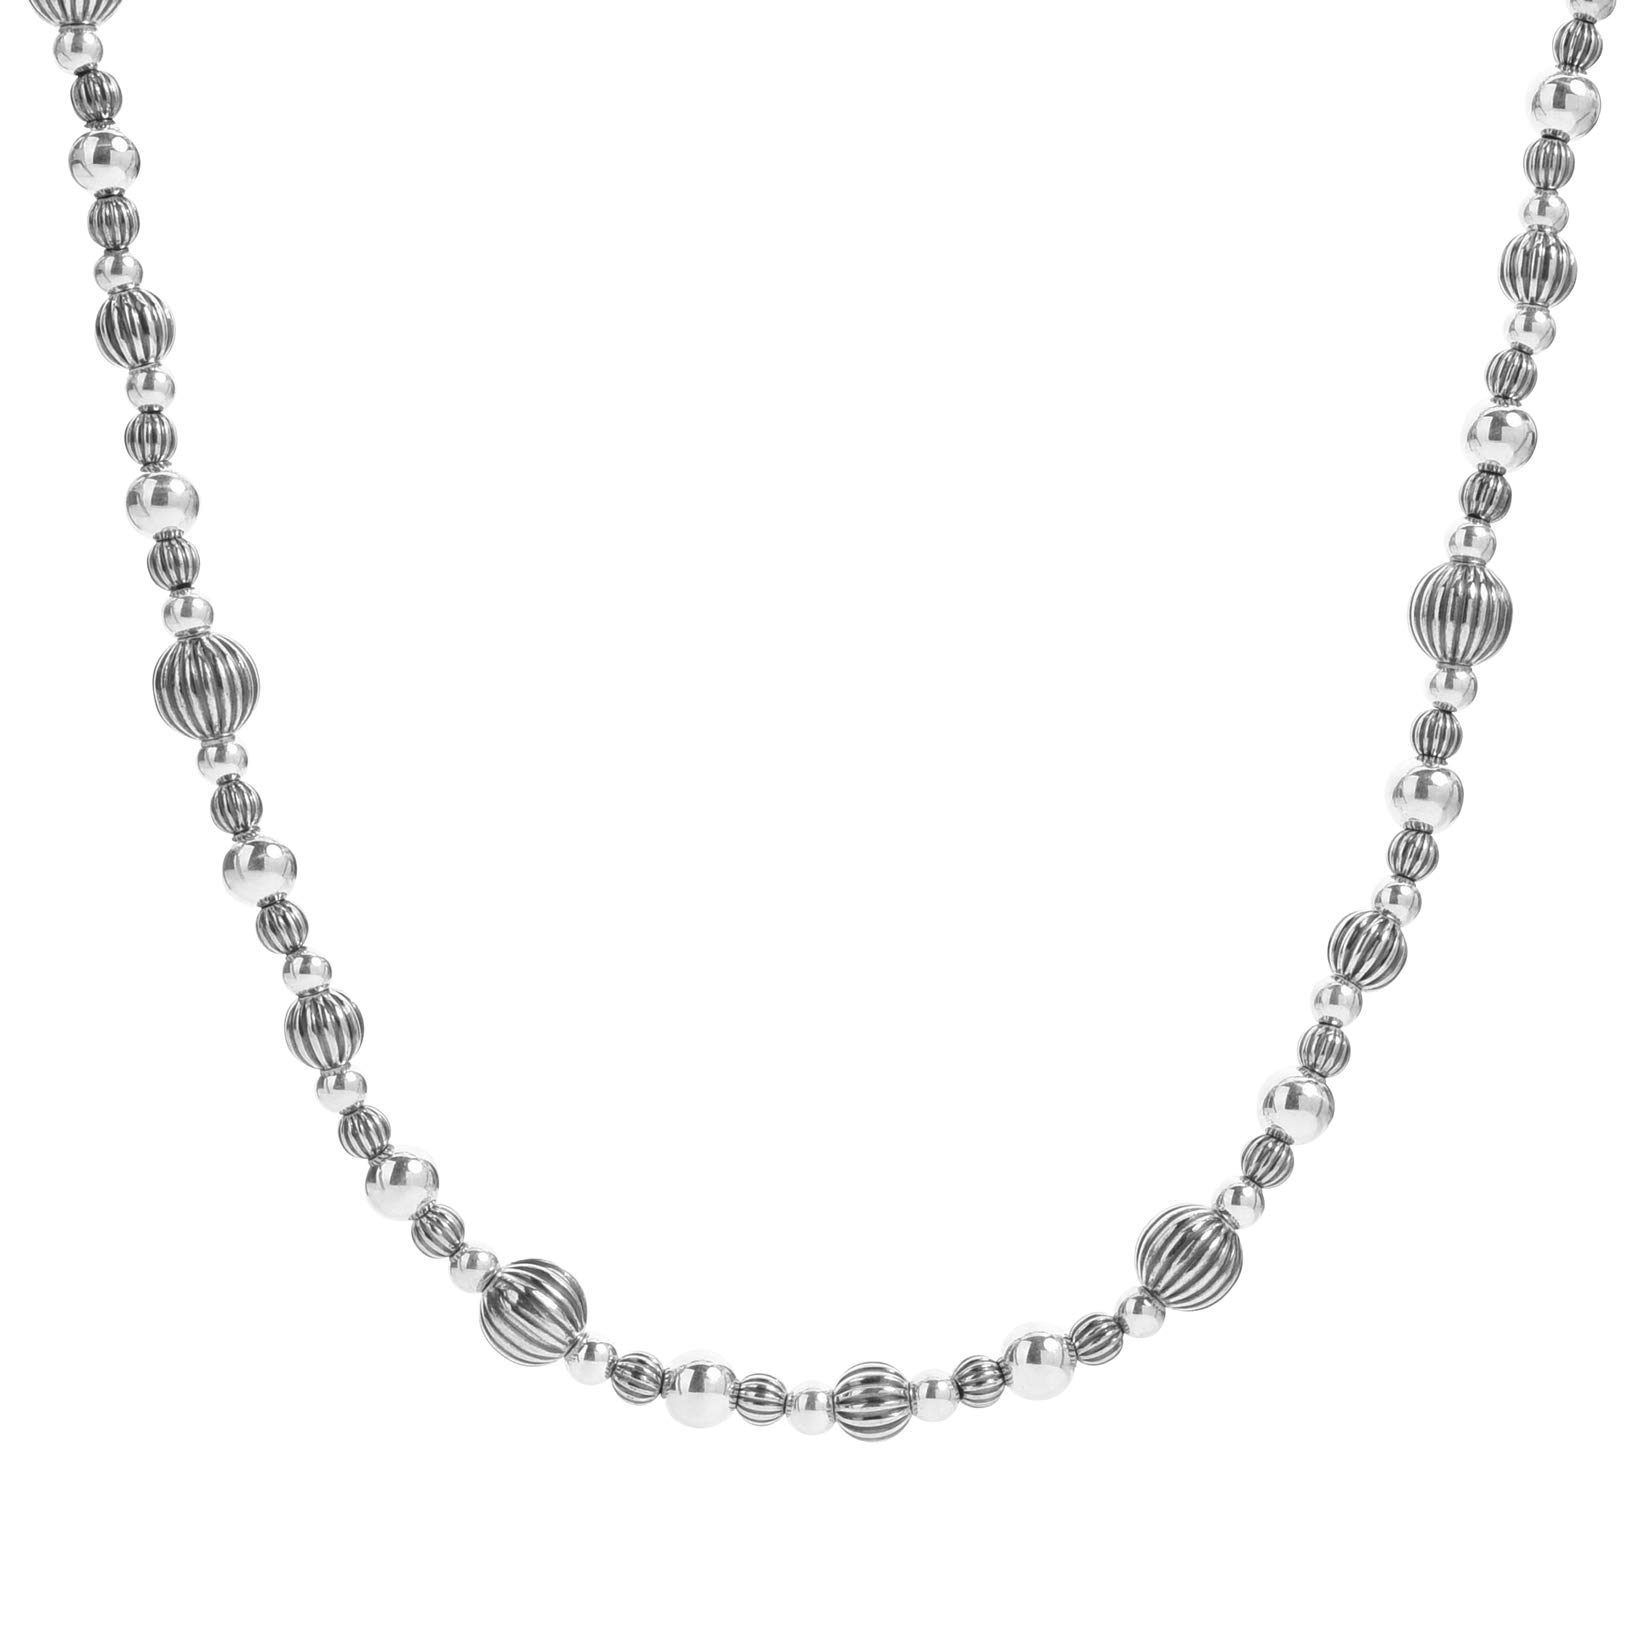 American West Sterling Silver Smooth and Corrugated Bead Necklace 32 to 34 Inch by American West